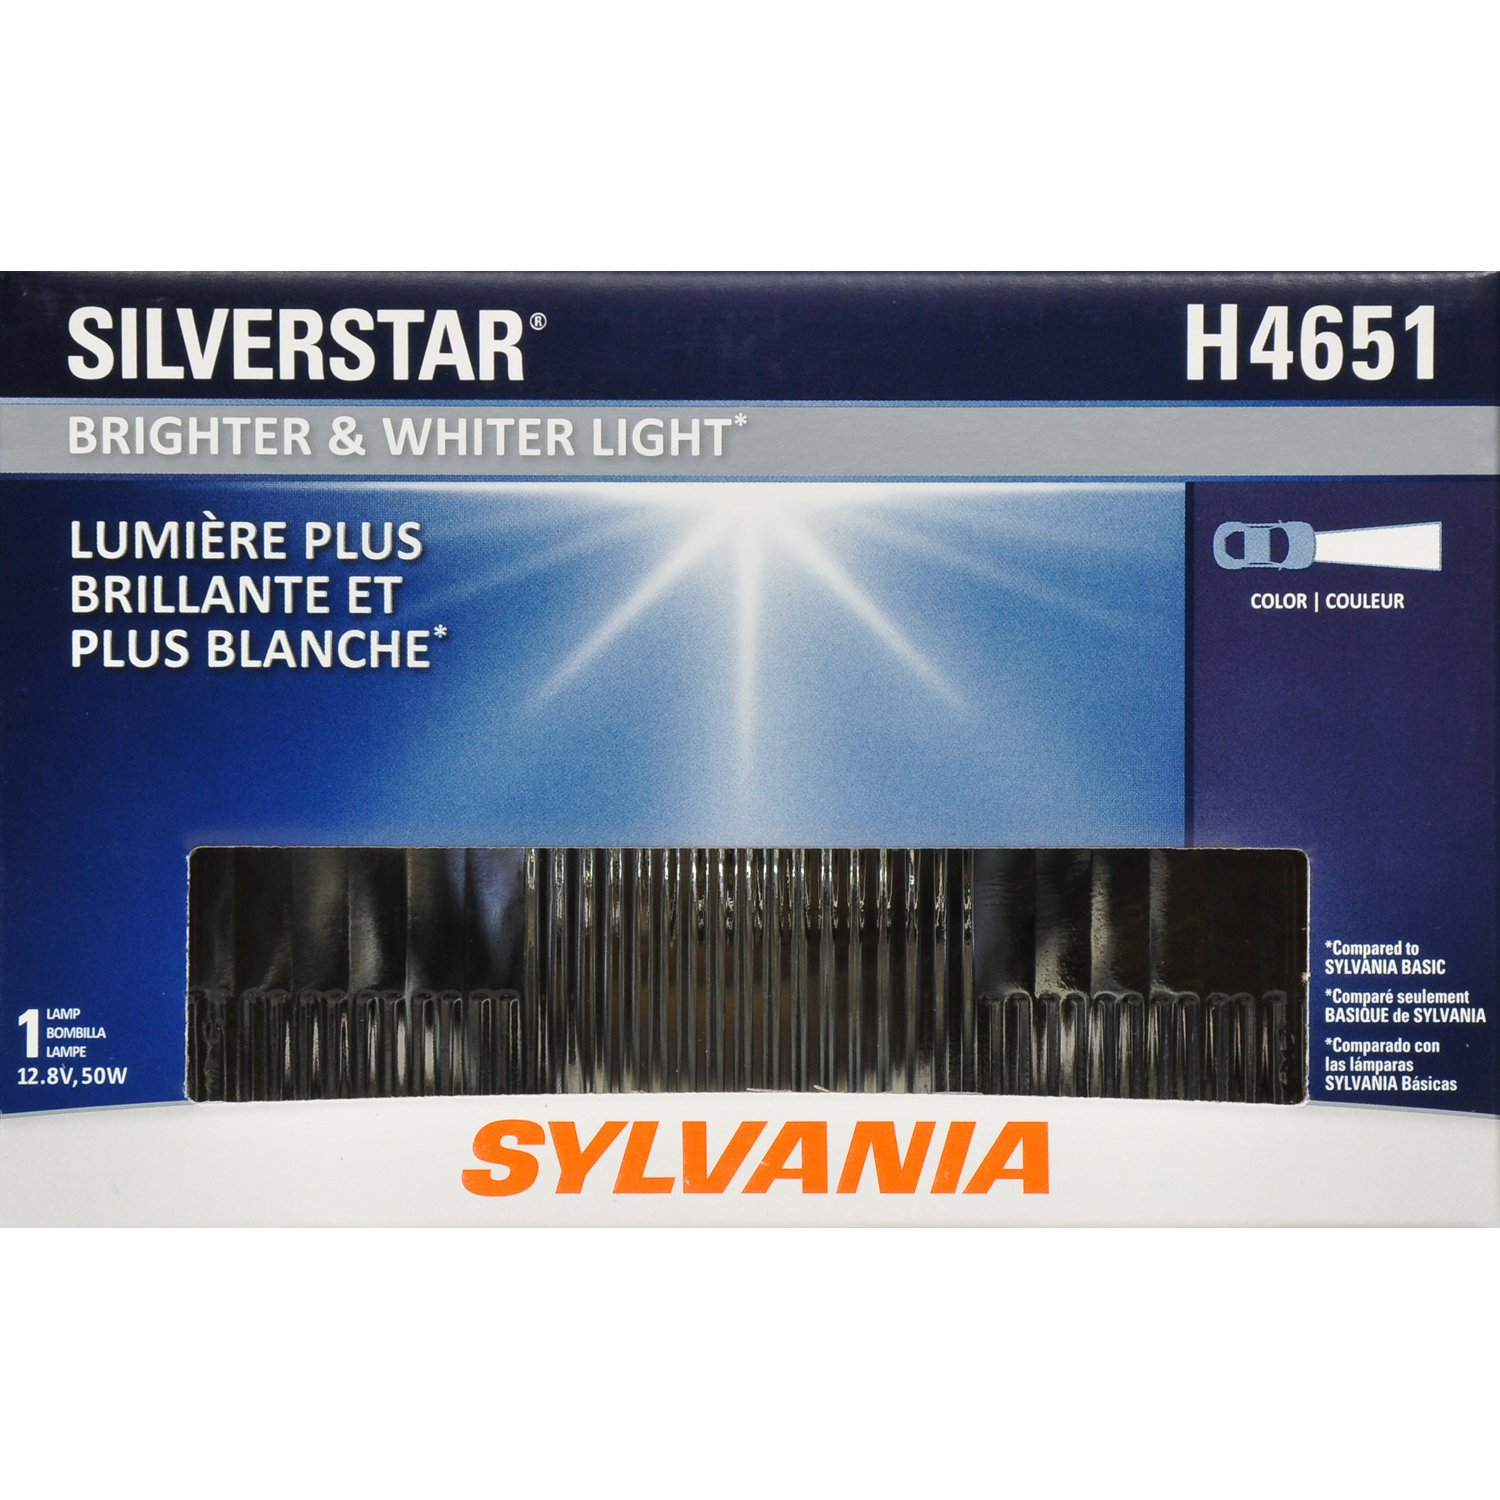 SYLVANIA - H4651 SilverStar Sealed Beam Headlight - High Performance Halogen Headlight Replacement (100x165), Brighter & Whiter Light for Added Clarity ...